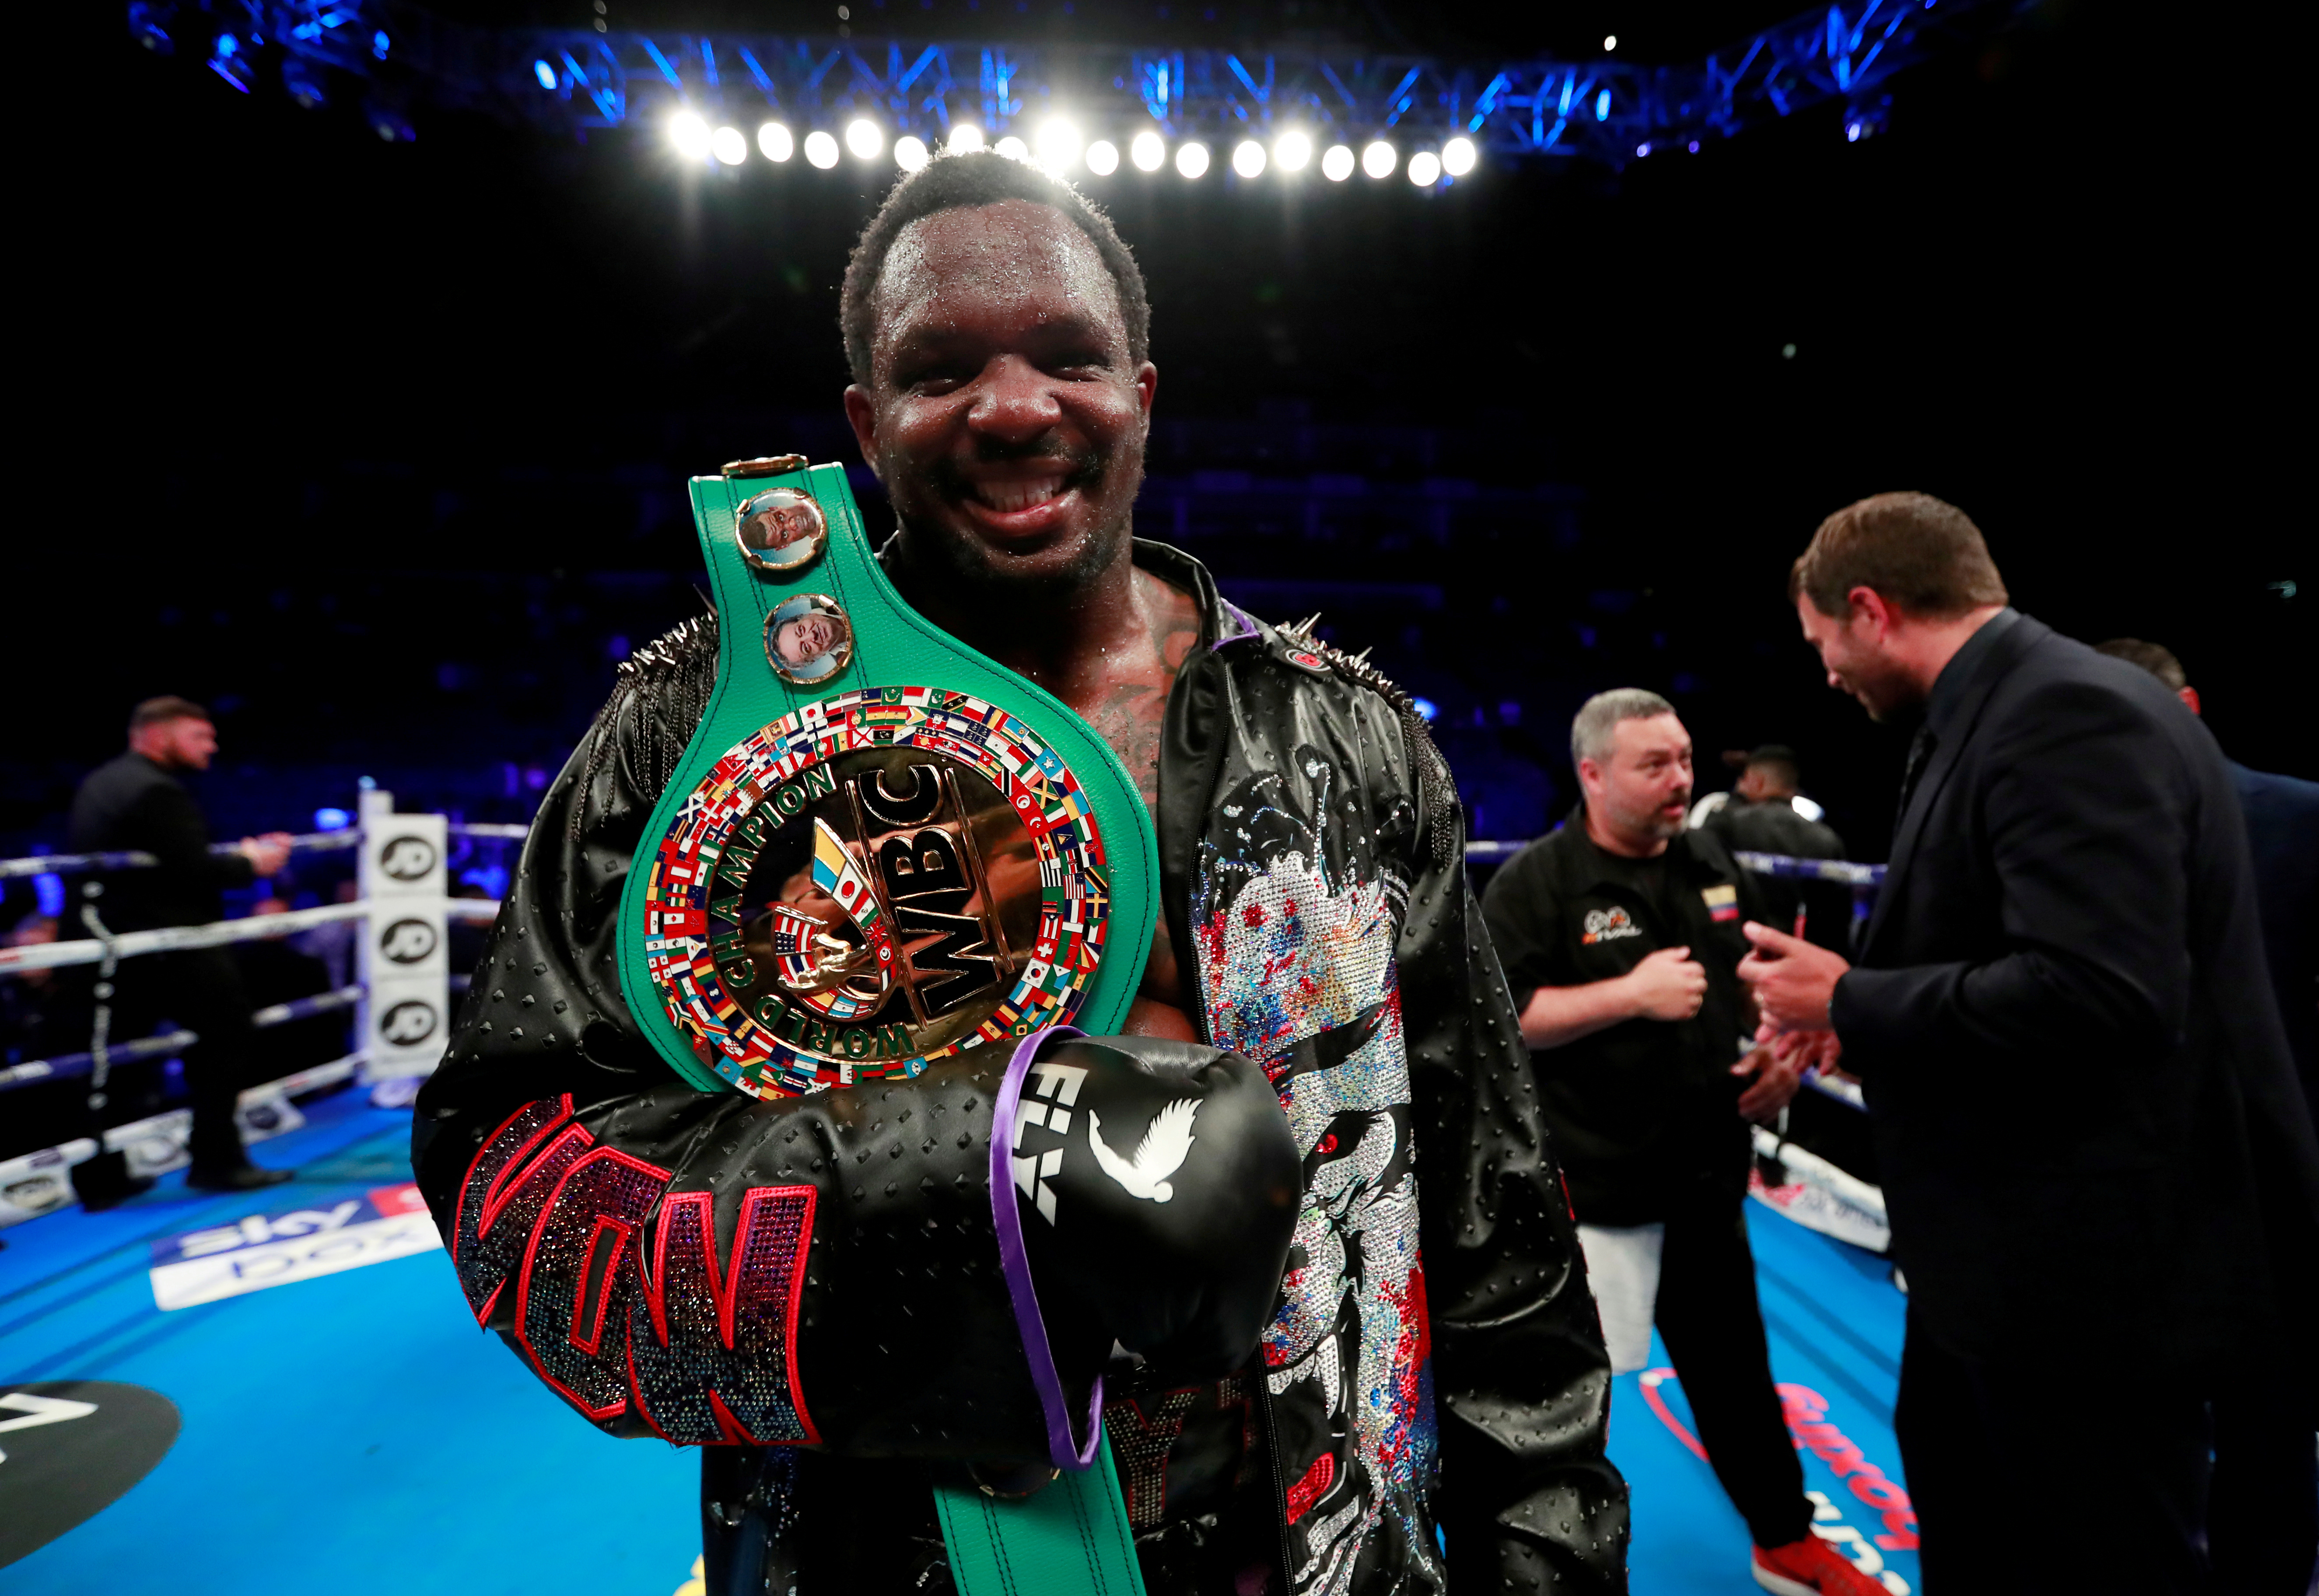 Boxing: Britain's Whyte cleared of wrongdoing by UK Anti-Doping